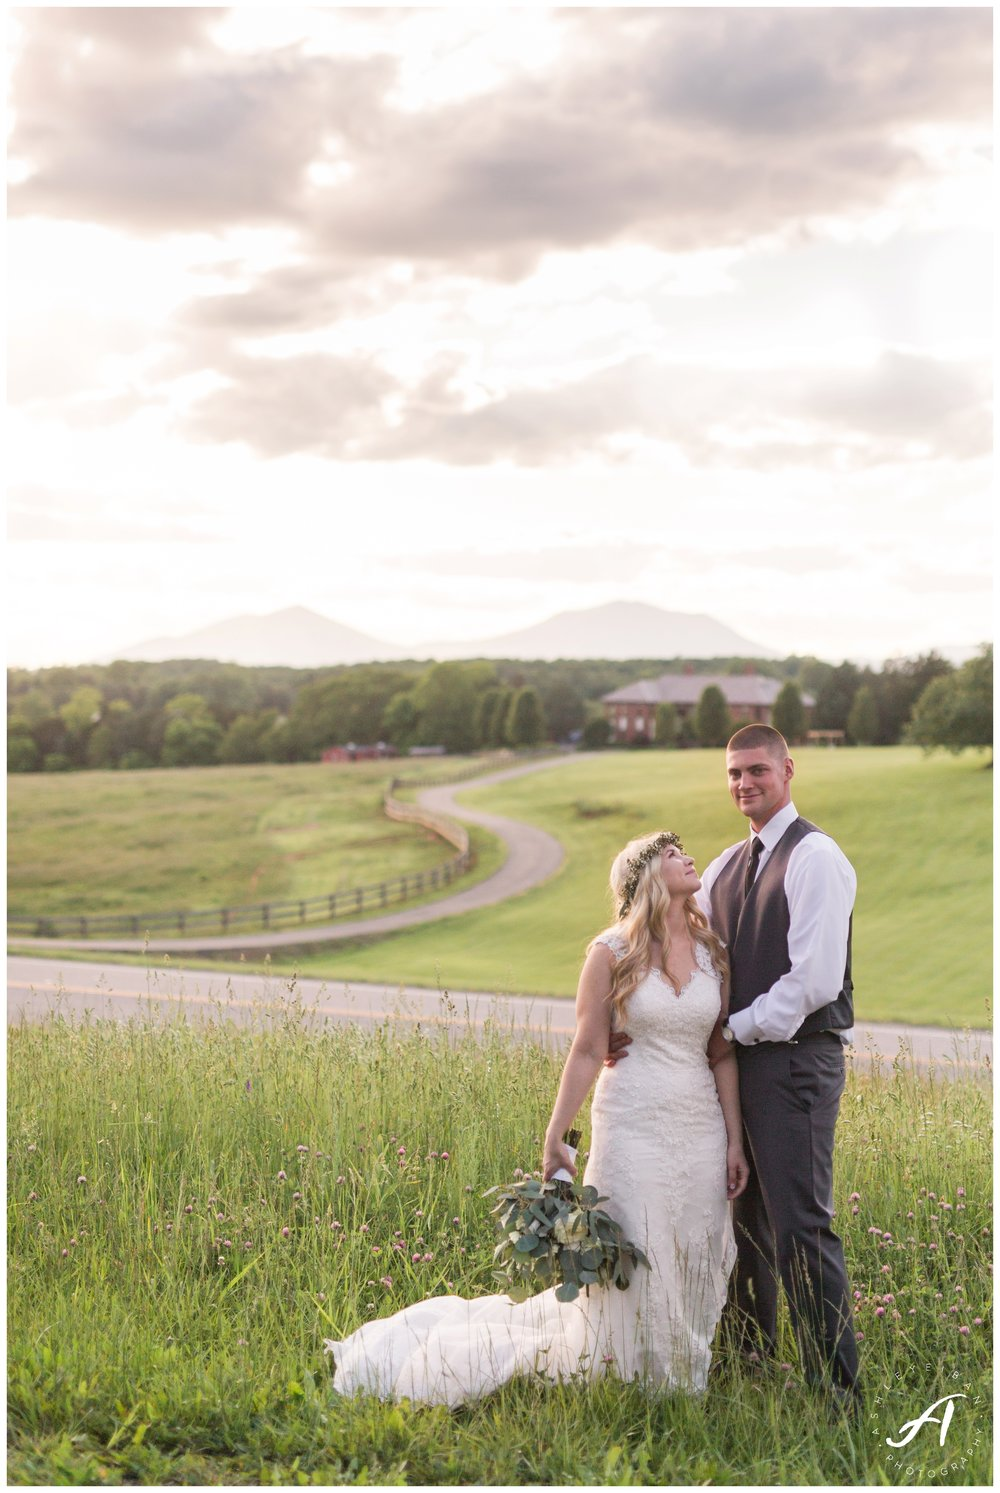 Garden Wedding at The Trivium Estate in Forest Virginia || Wedding Photographer in Charlottesville and Lynchburg VA || www.ashleyeiban.com